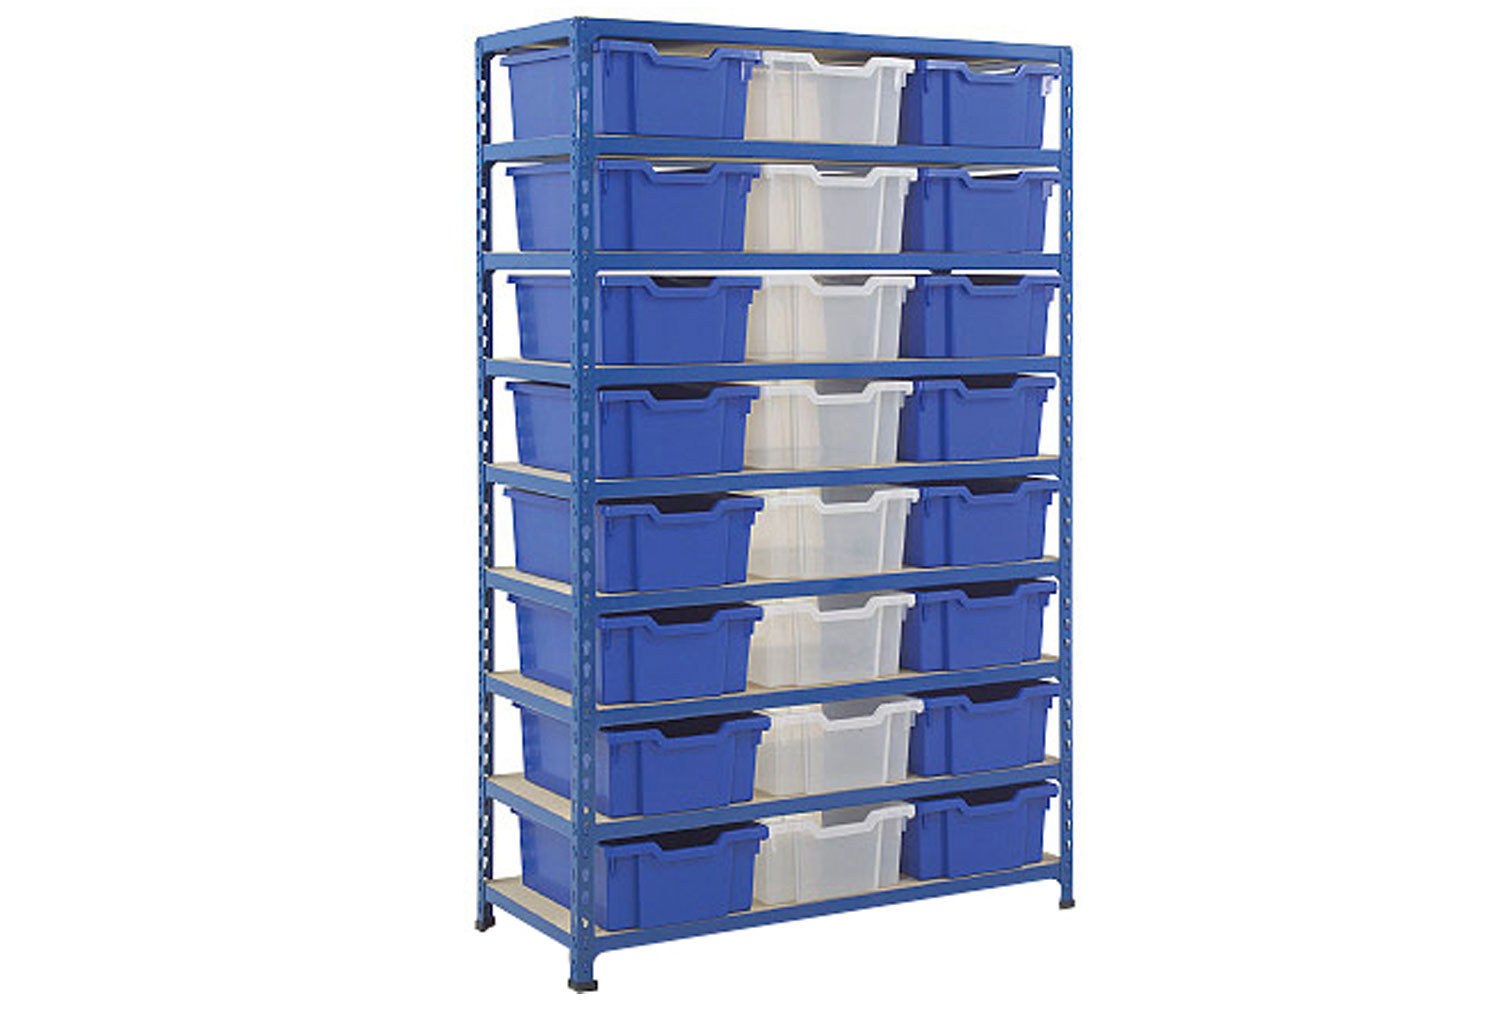 Rapid 2 shelving bay with 24 deep Gratnells trays